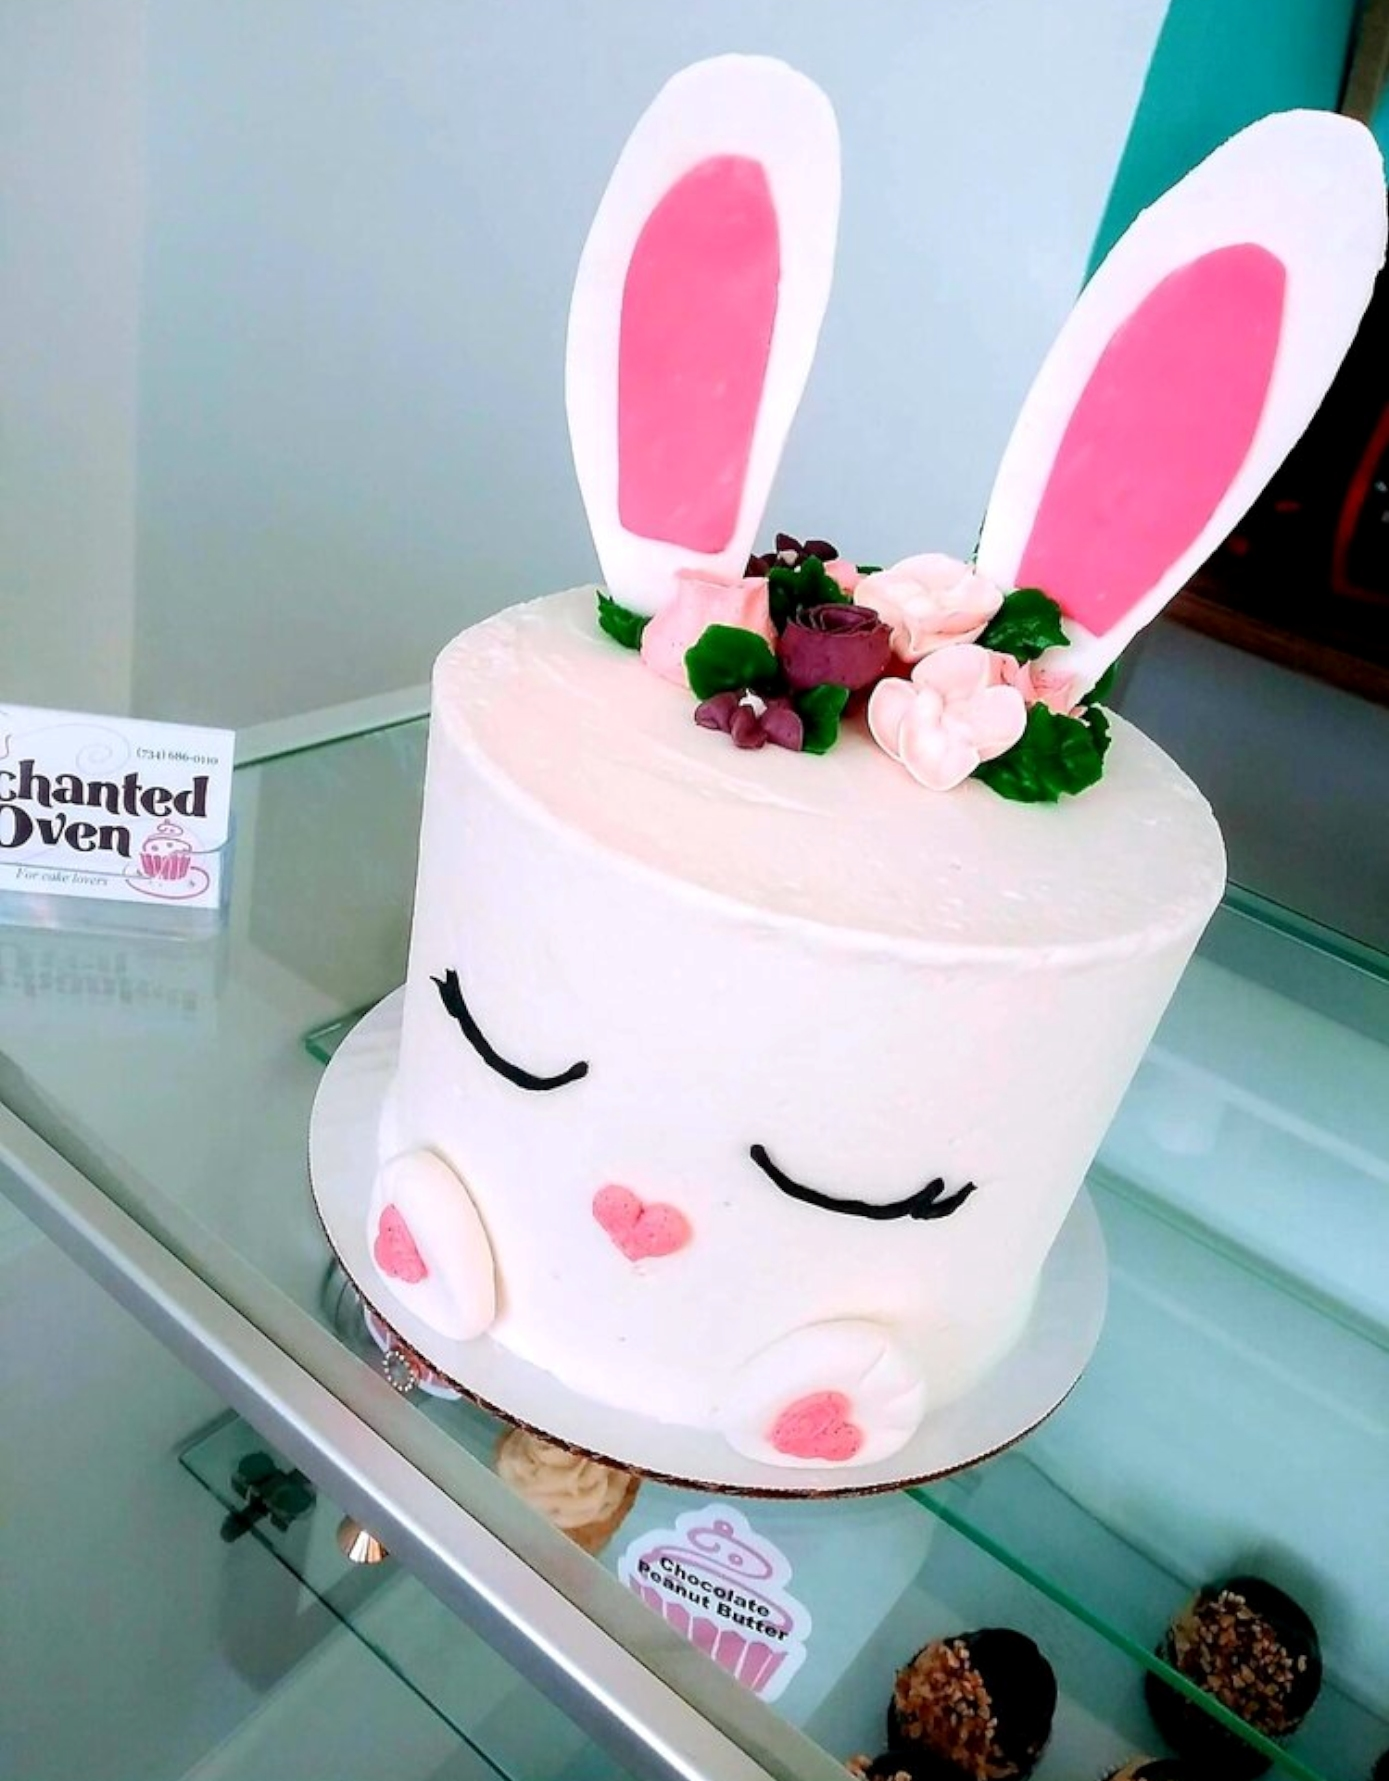 Enchanted Oven's Easter Cake is beyond adorable.